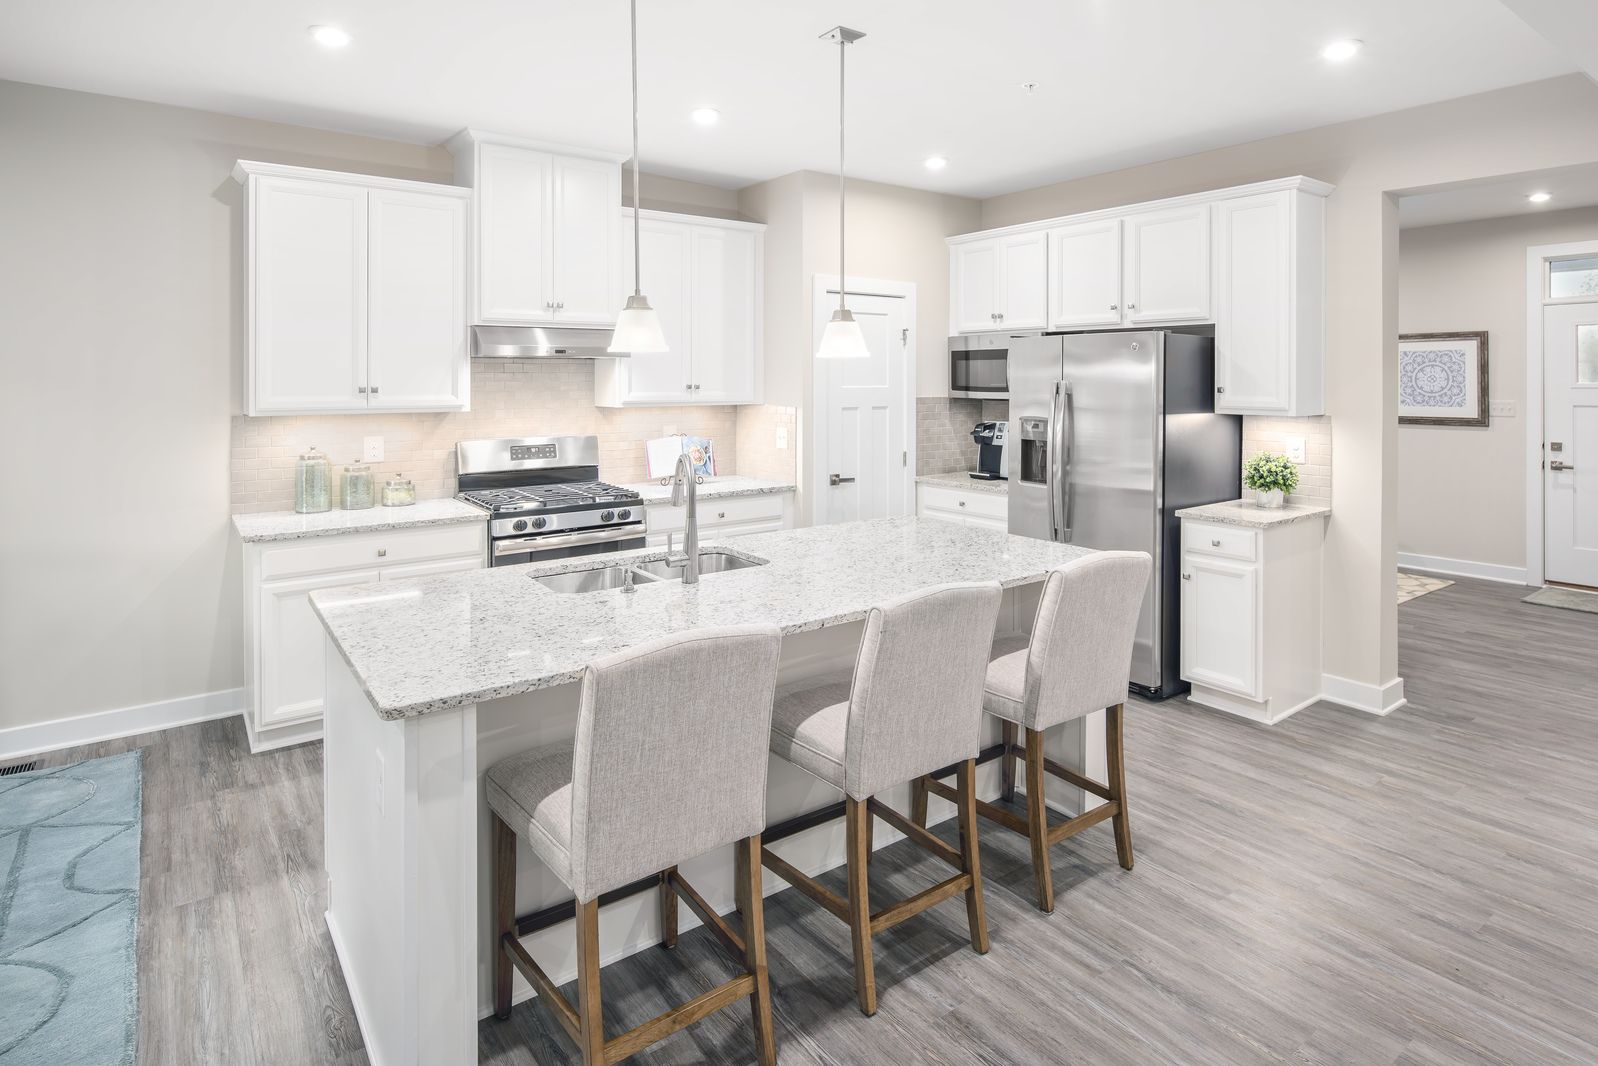 Kitchen featured in the Ballenger By Ryan Homes in Cincinnati, OH